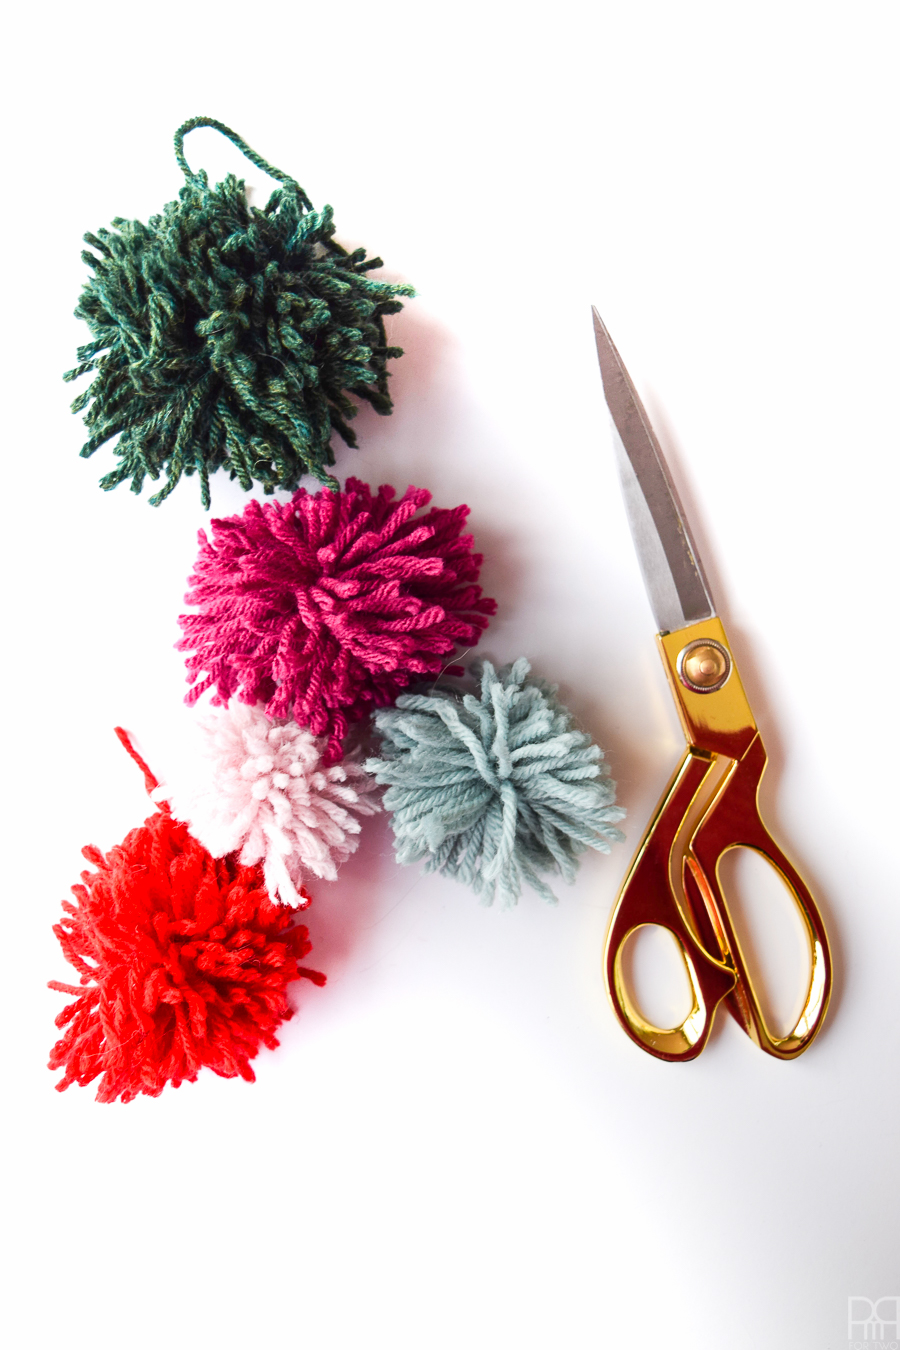 diy-pom-poms-and-tassels-12